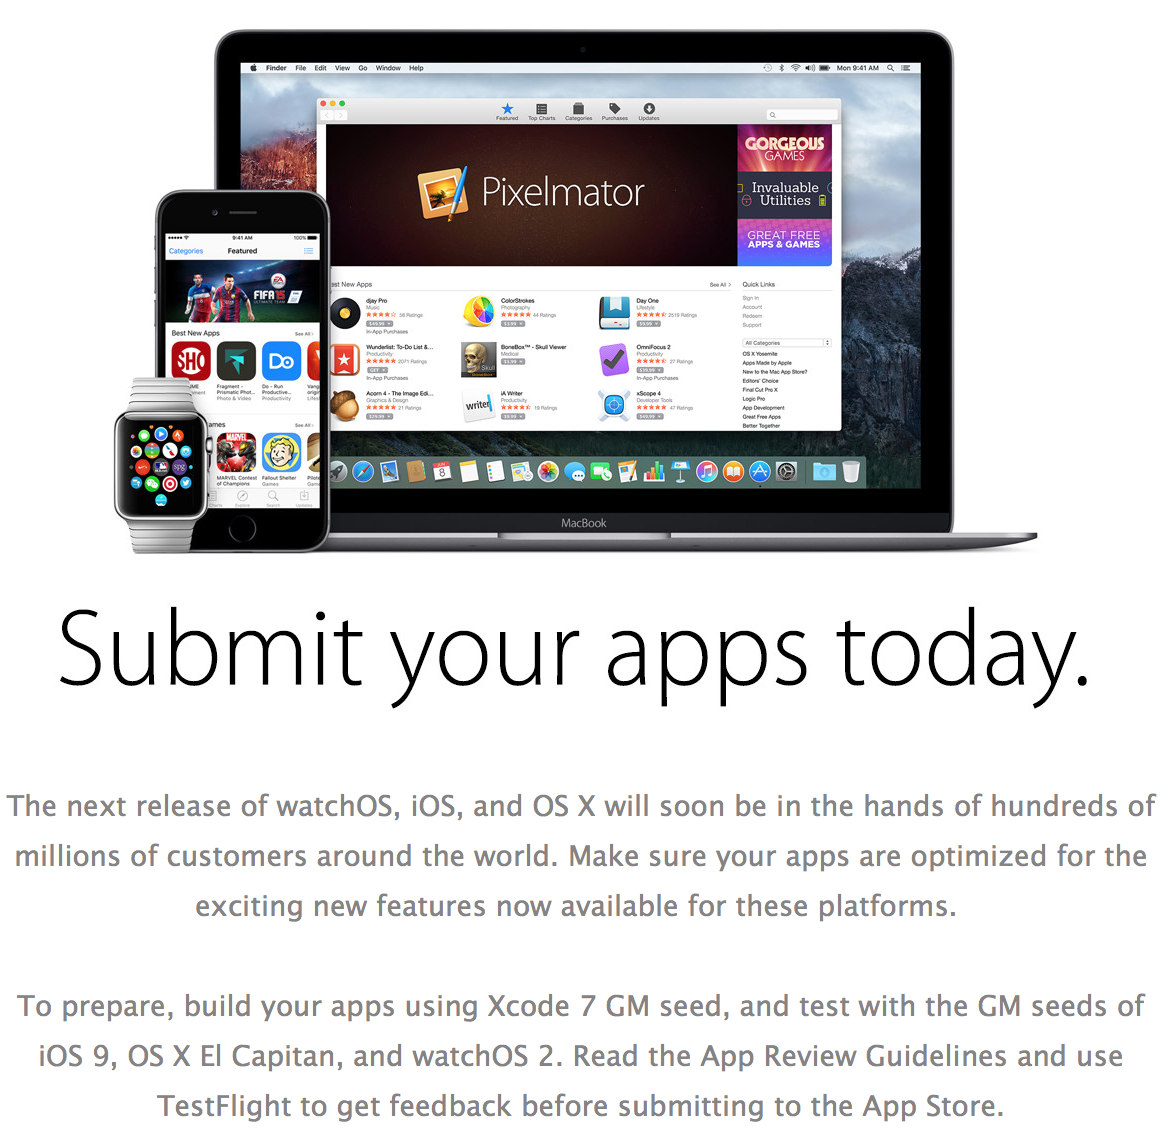 Submit your apps today